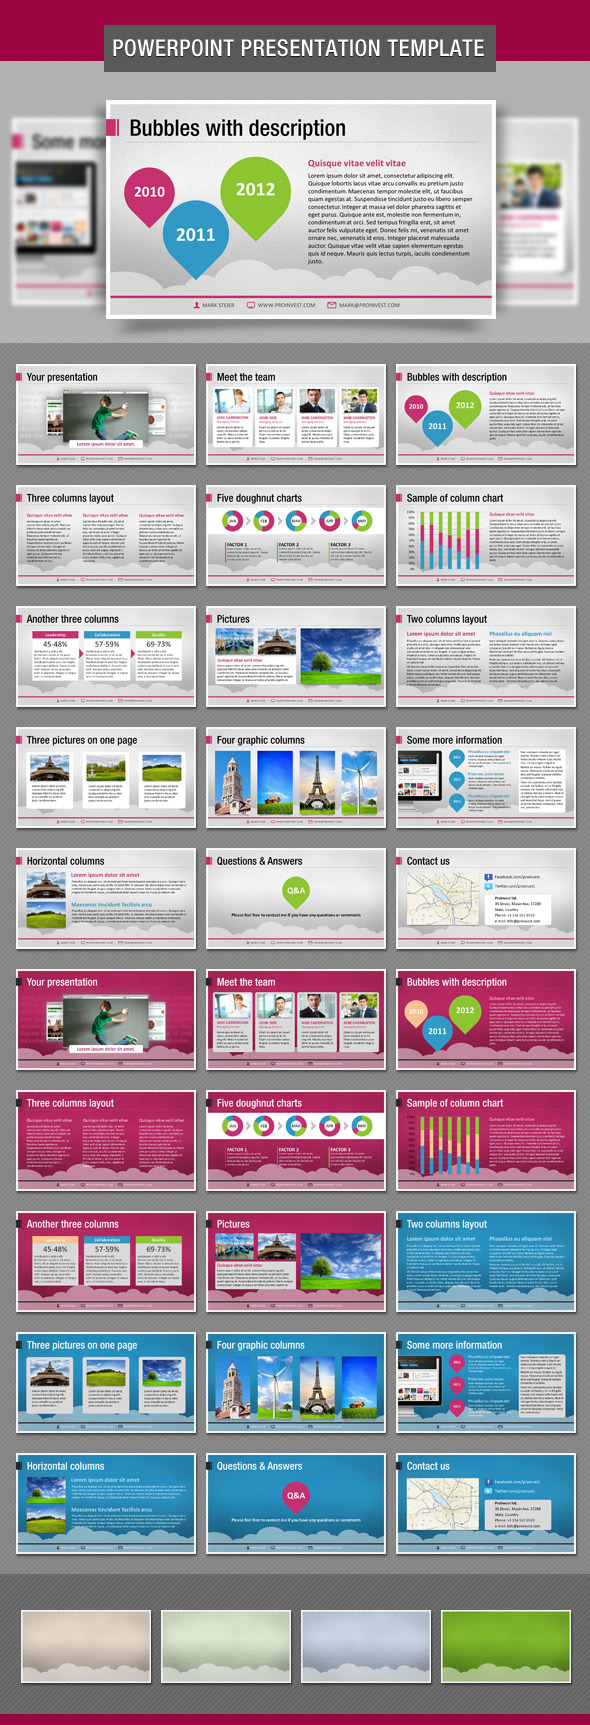 photo essay powerpoint presentations